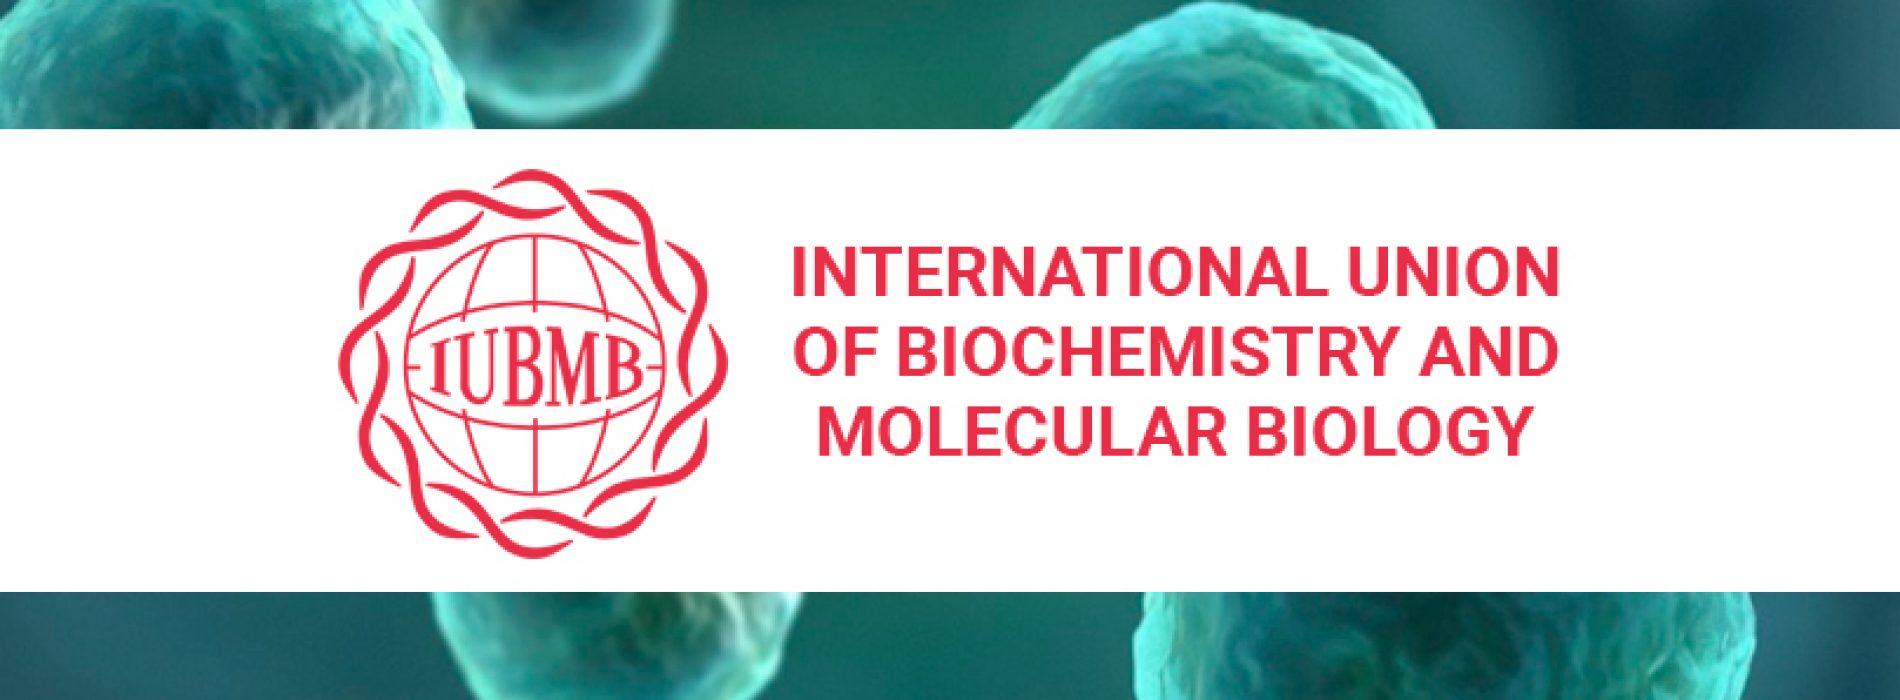 Call for Applications for Editor-in-Chief for IUBMB Life